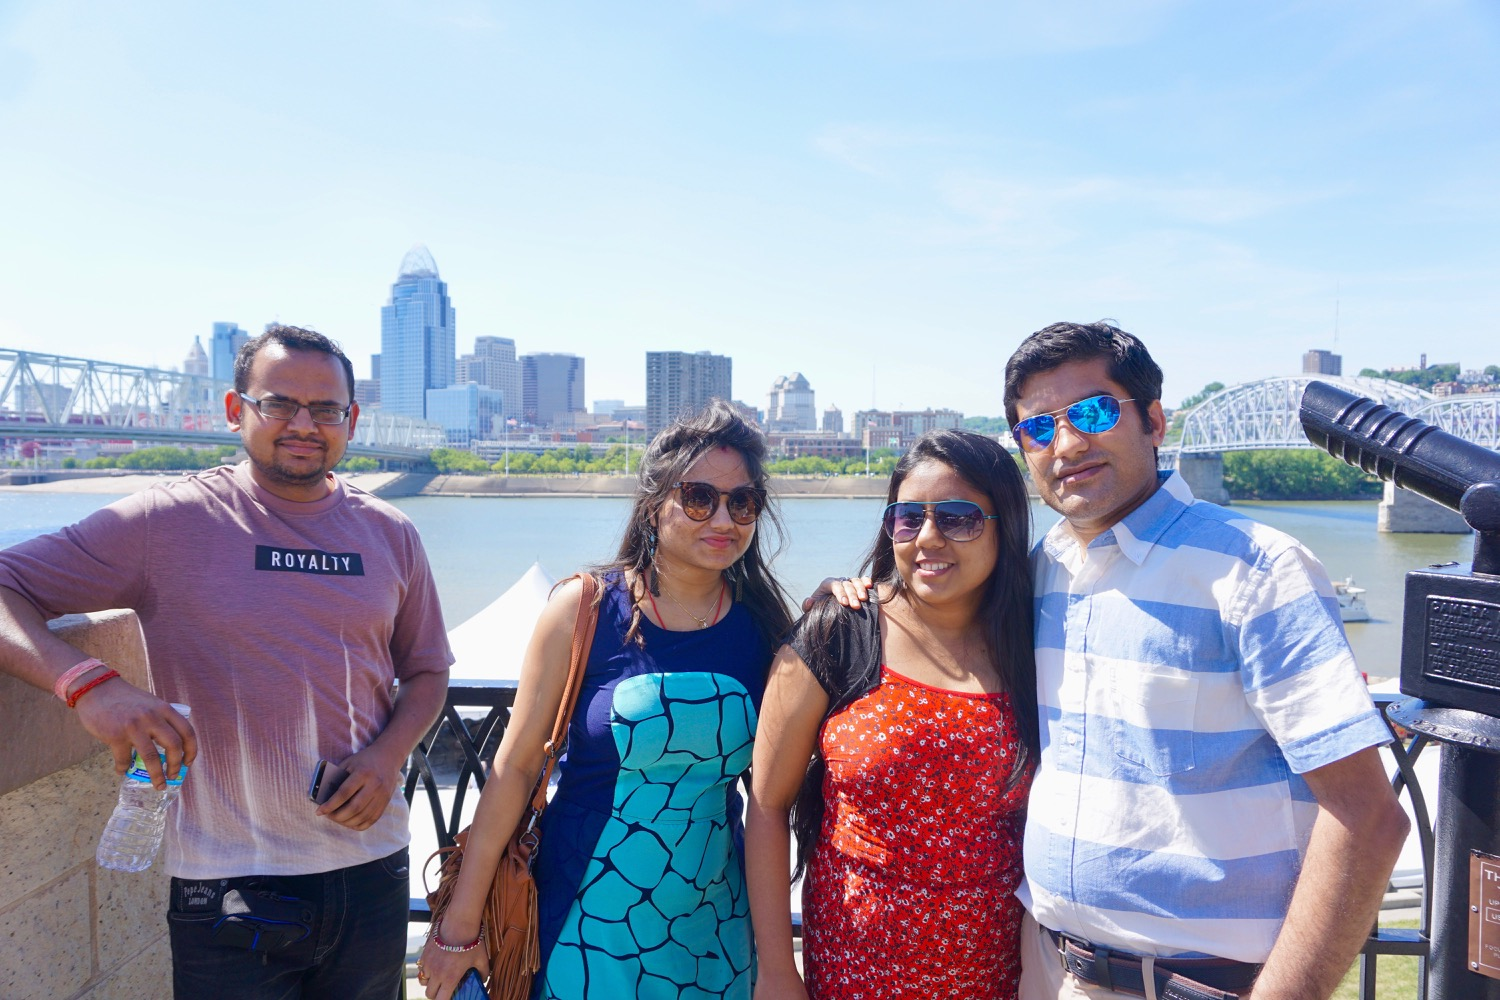 Sneha, Kumar, Manalee, and Roy / Image: Brian Planalp